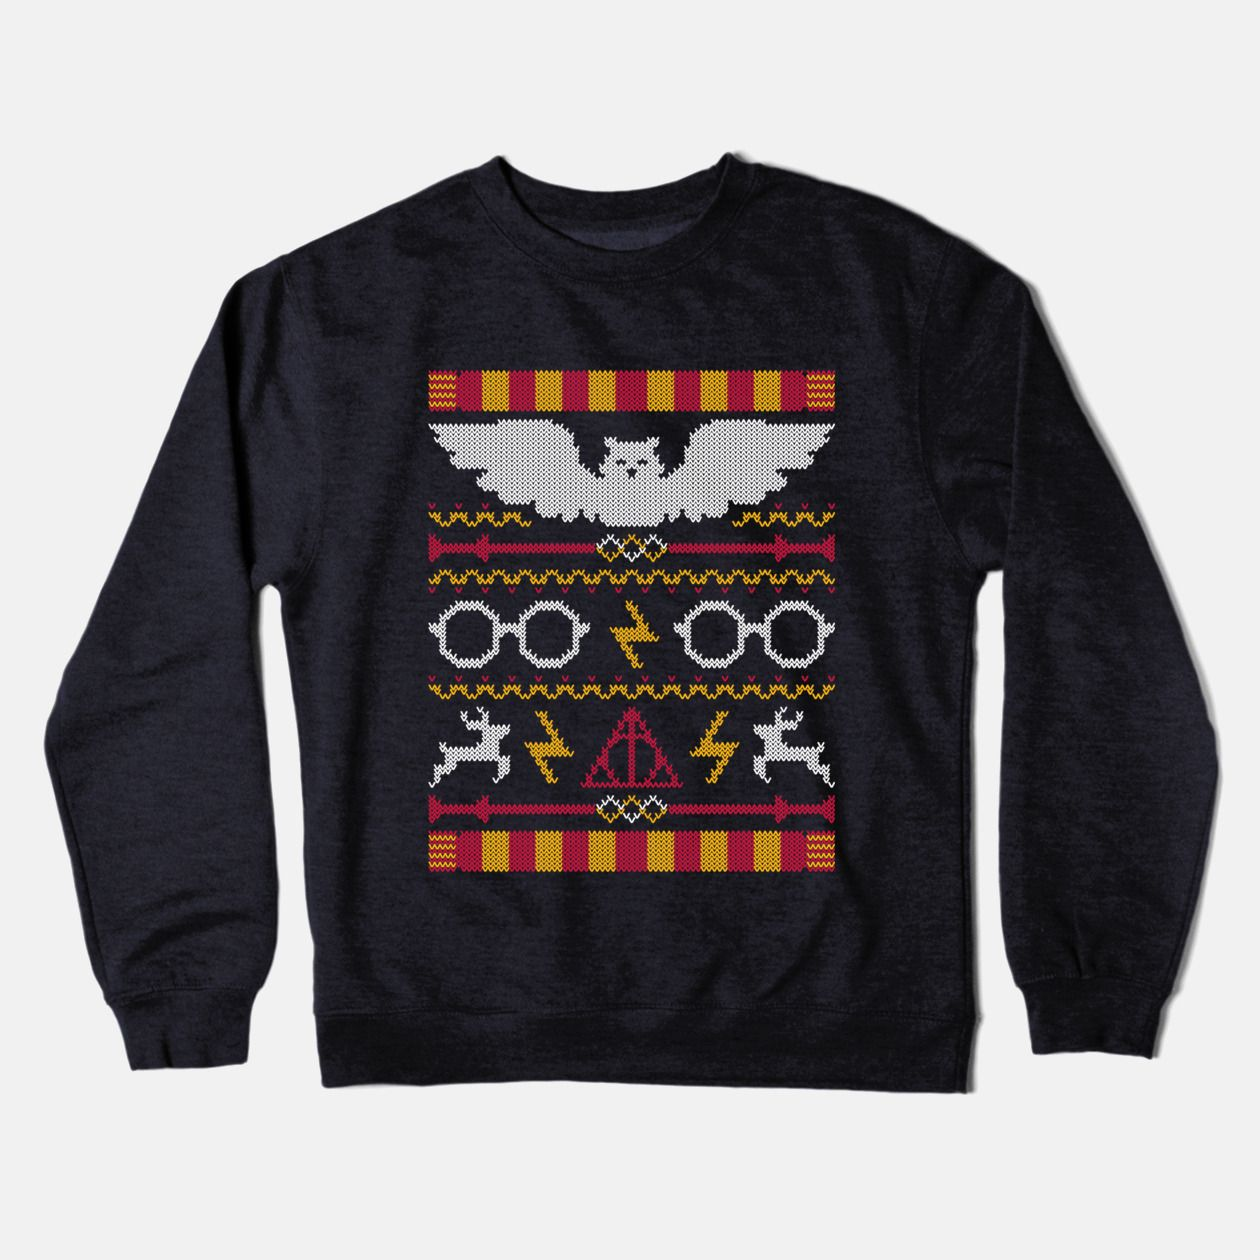 The Sweater That Lived - Harry Potter Ugly Christmas Sweater ...